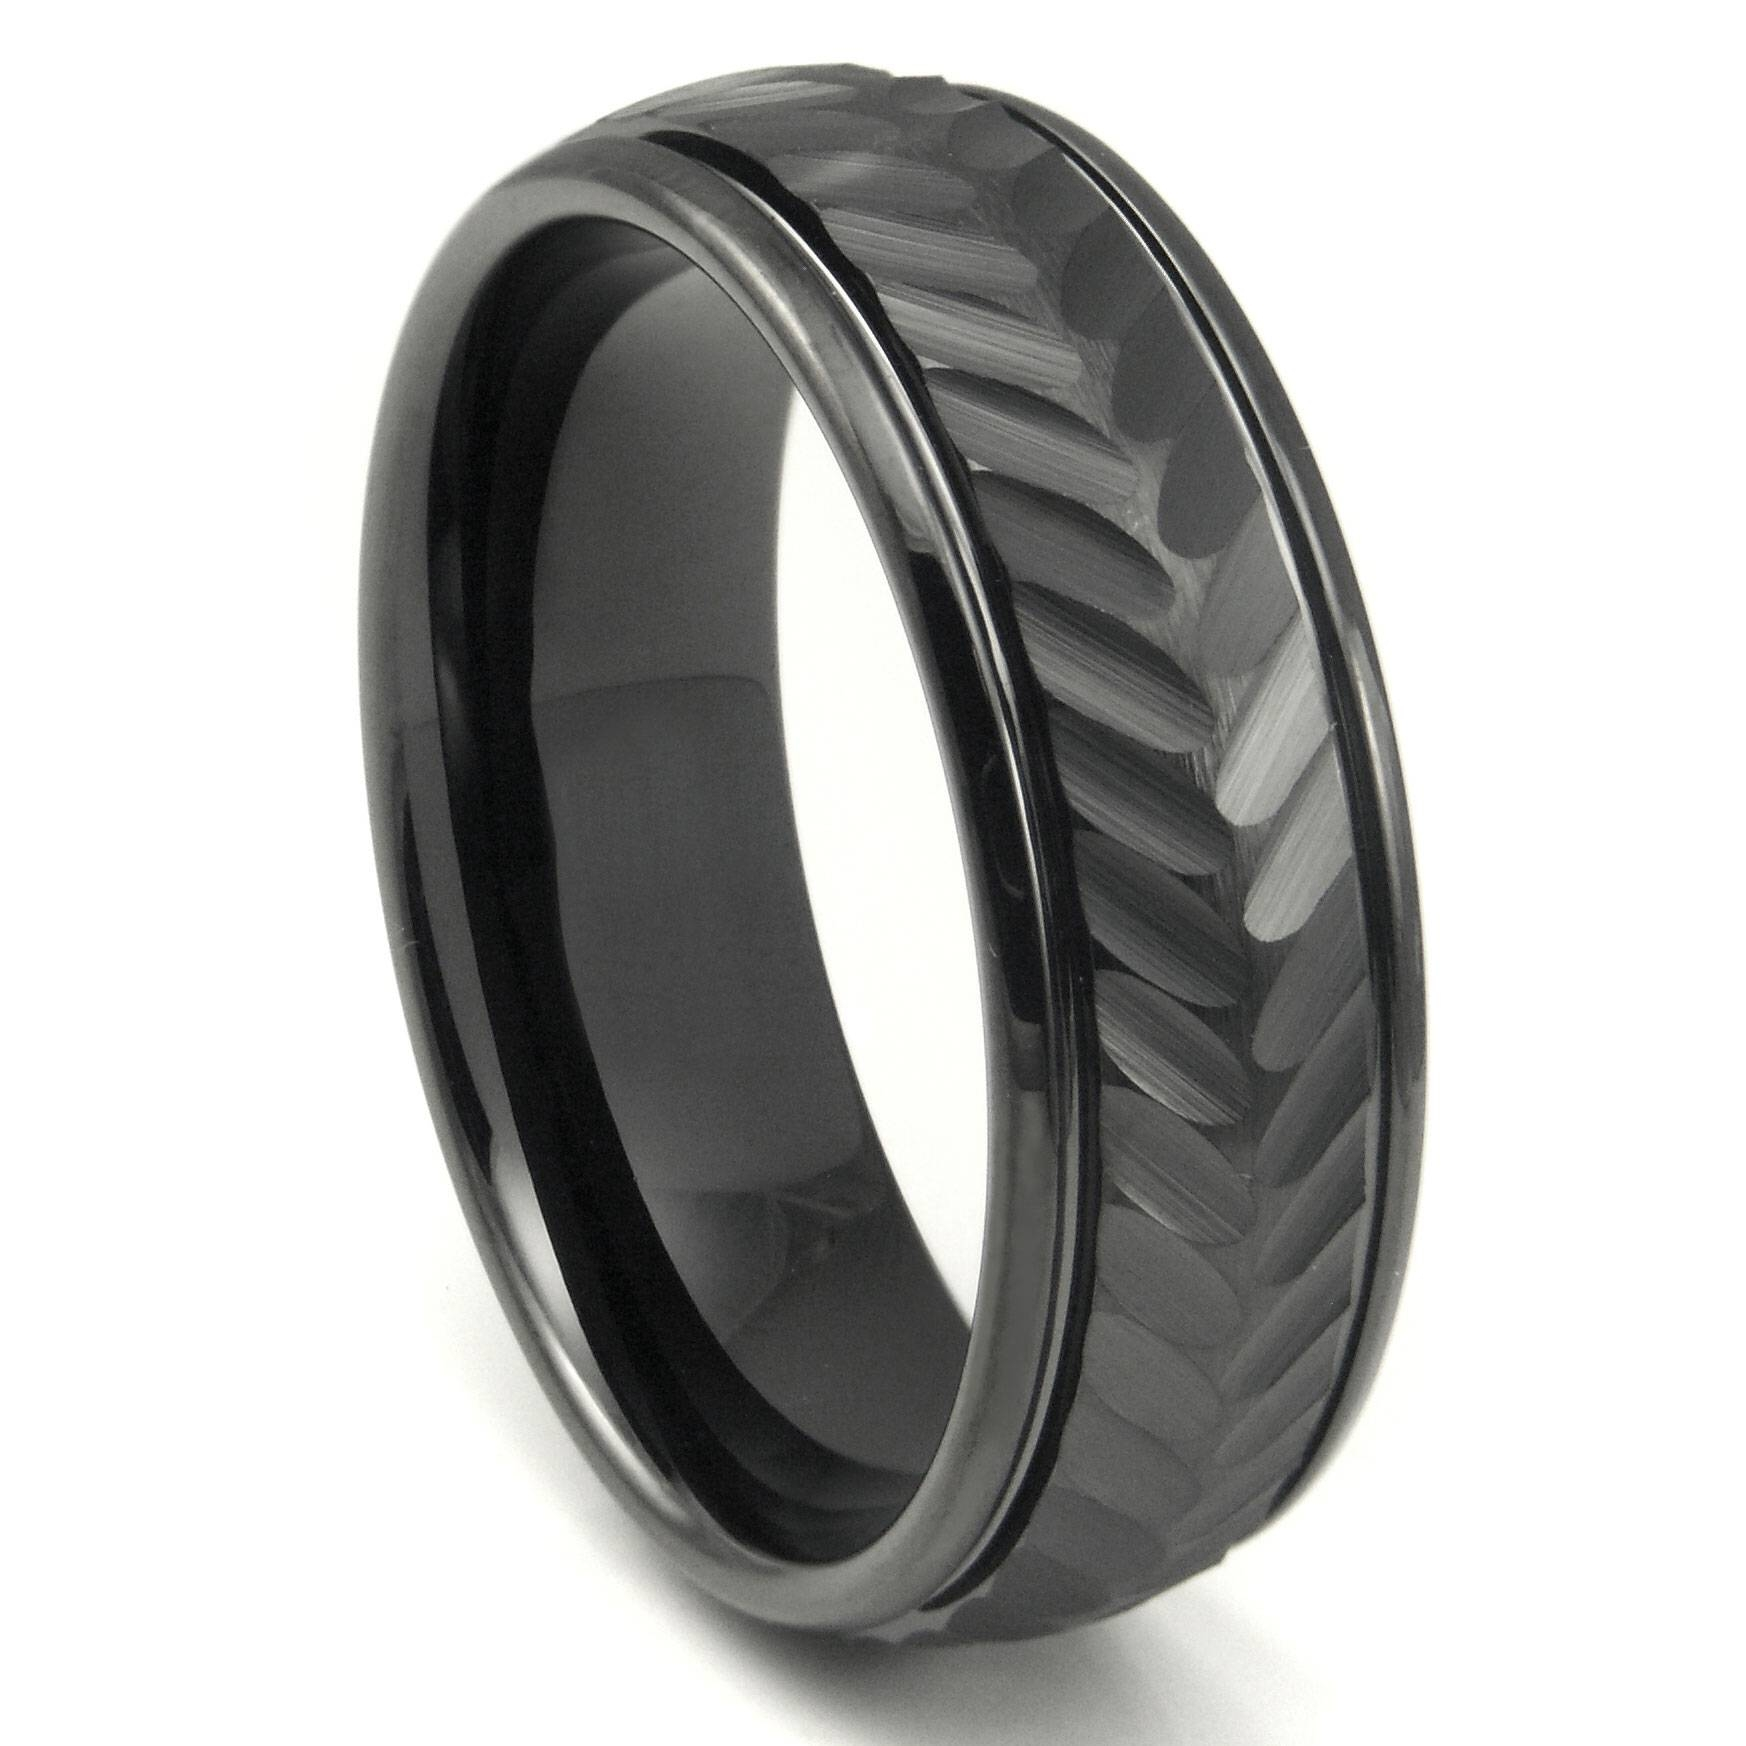 Black Tungsten Carbide 8mm Chevron Newport Wedding Band Ring Pertaining To Tungsten Wedding Bands (View 2 of 15)